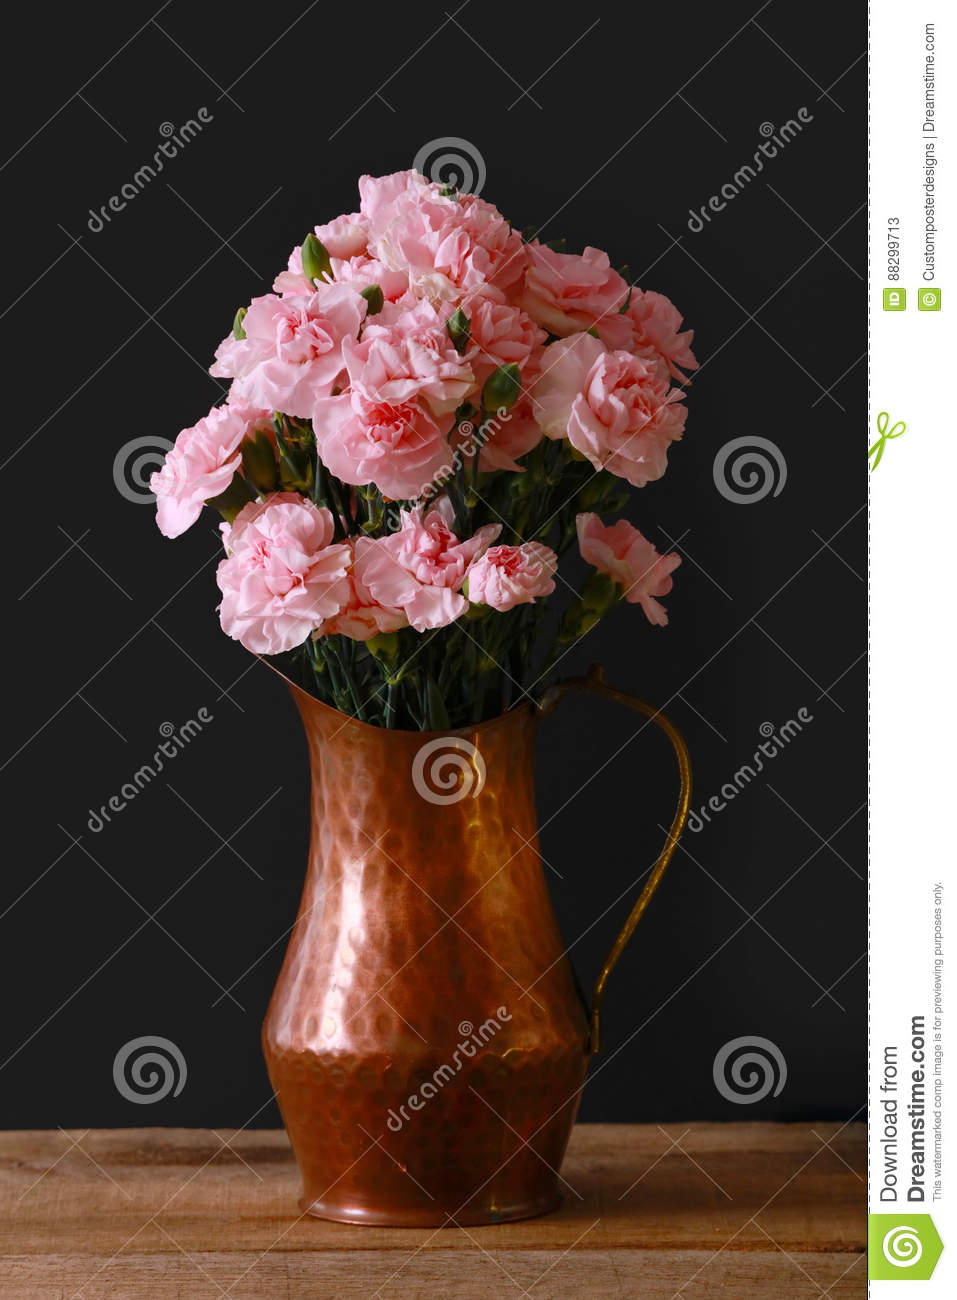 A copper vase on a black background with pink miniature carnations.